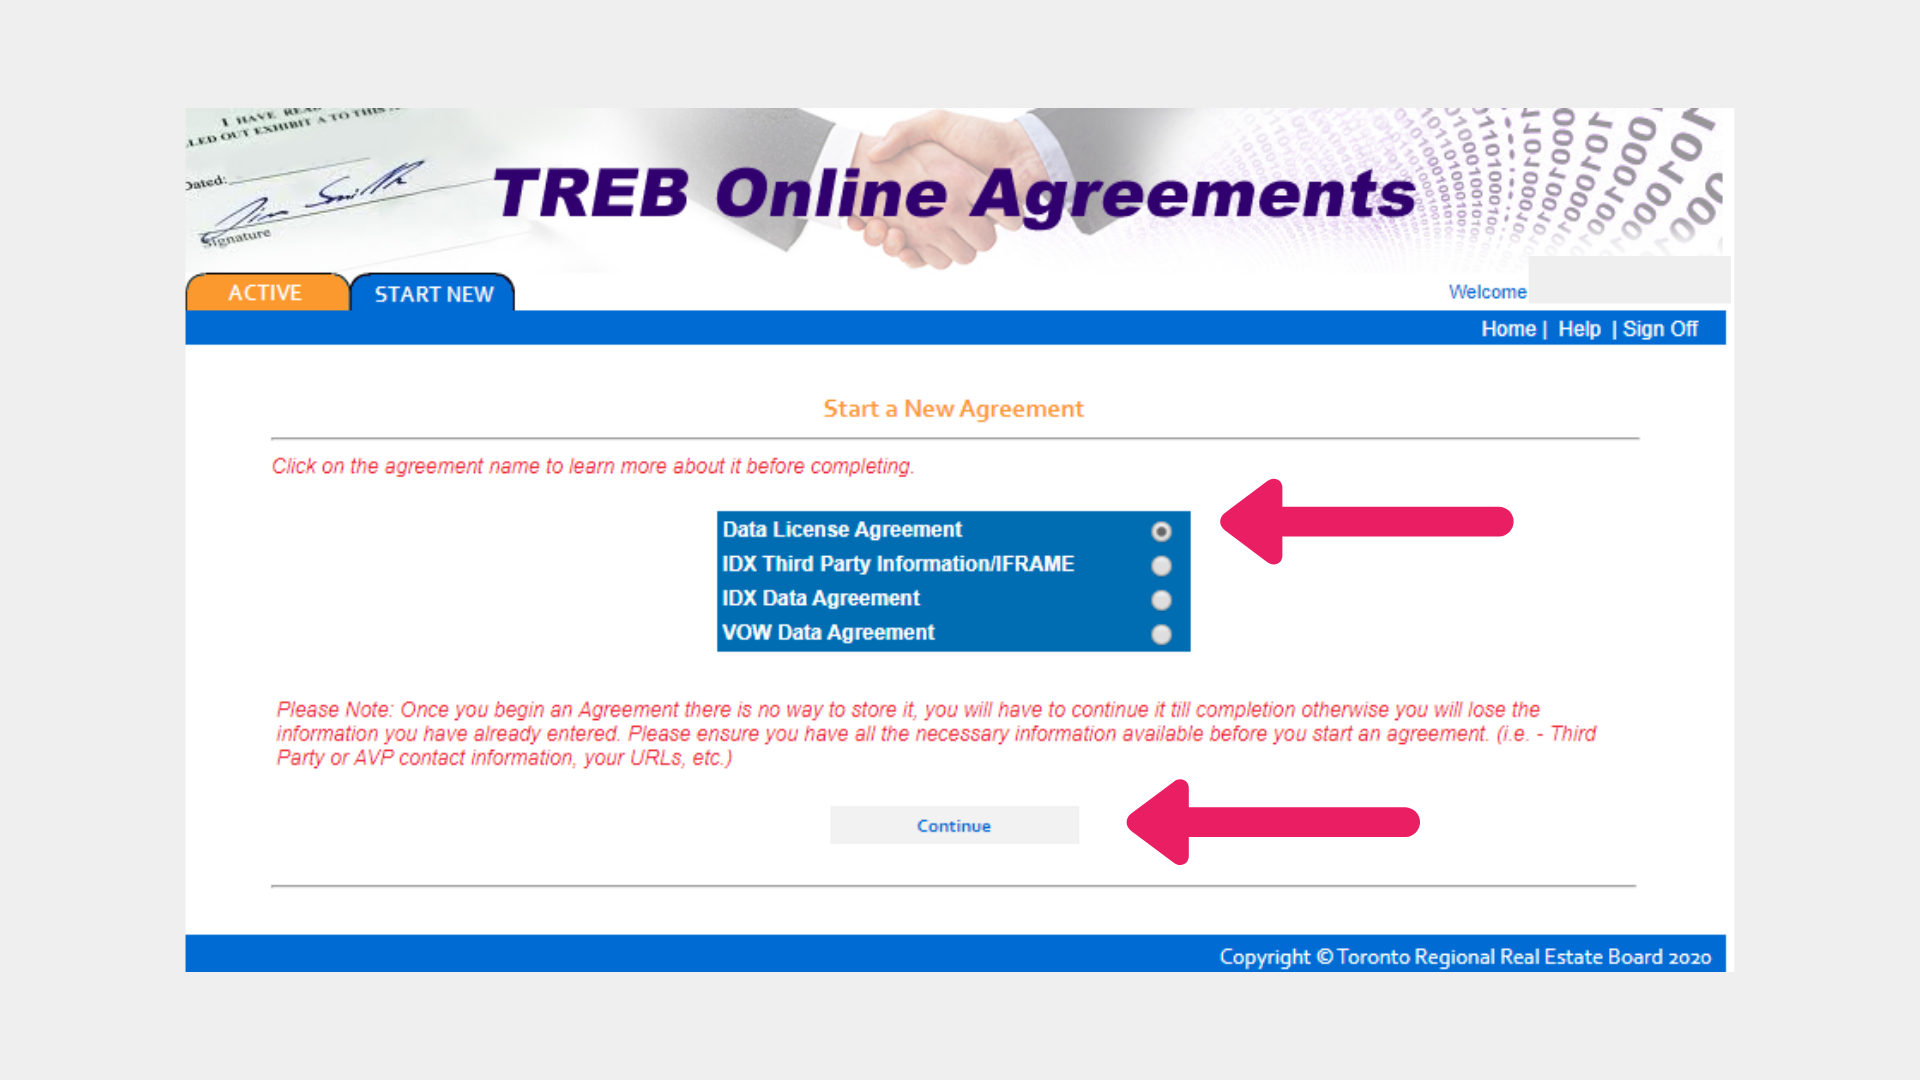 TRREB_Online_Agreements_-_Guideline__16_.png